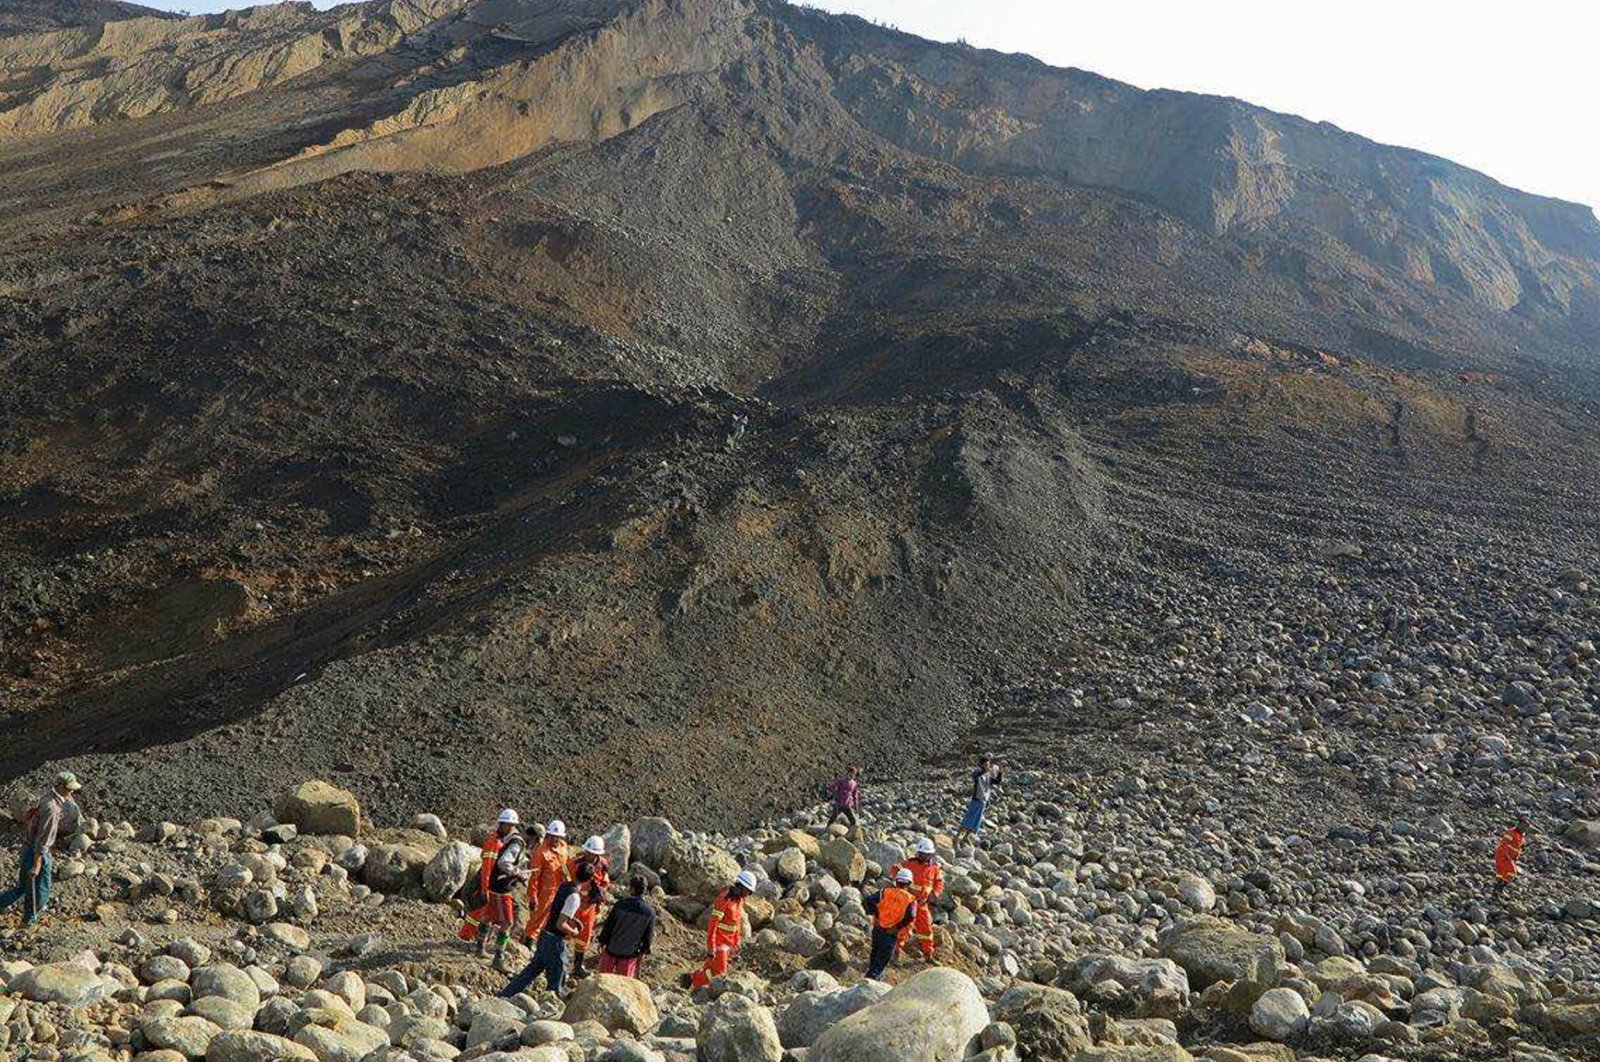 In this Dec. 26, 2015, file photo, rescue workers are seen at the site of a landslide at a jade mine in Hpakant, Kachin State, Myanmar. (AFP Photo)